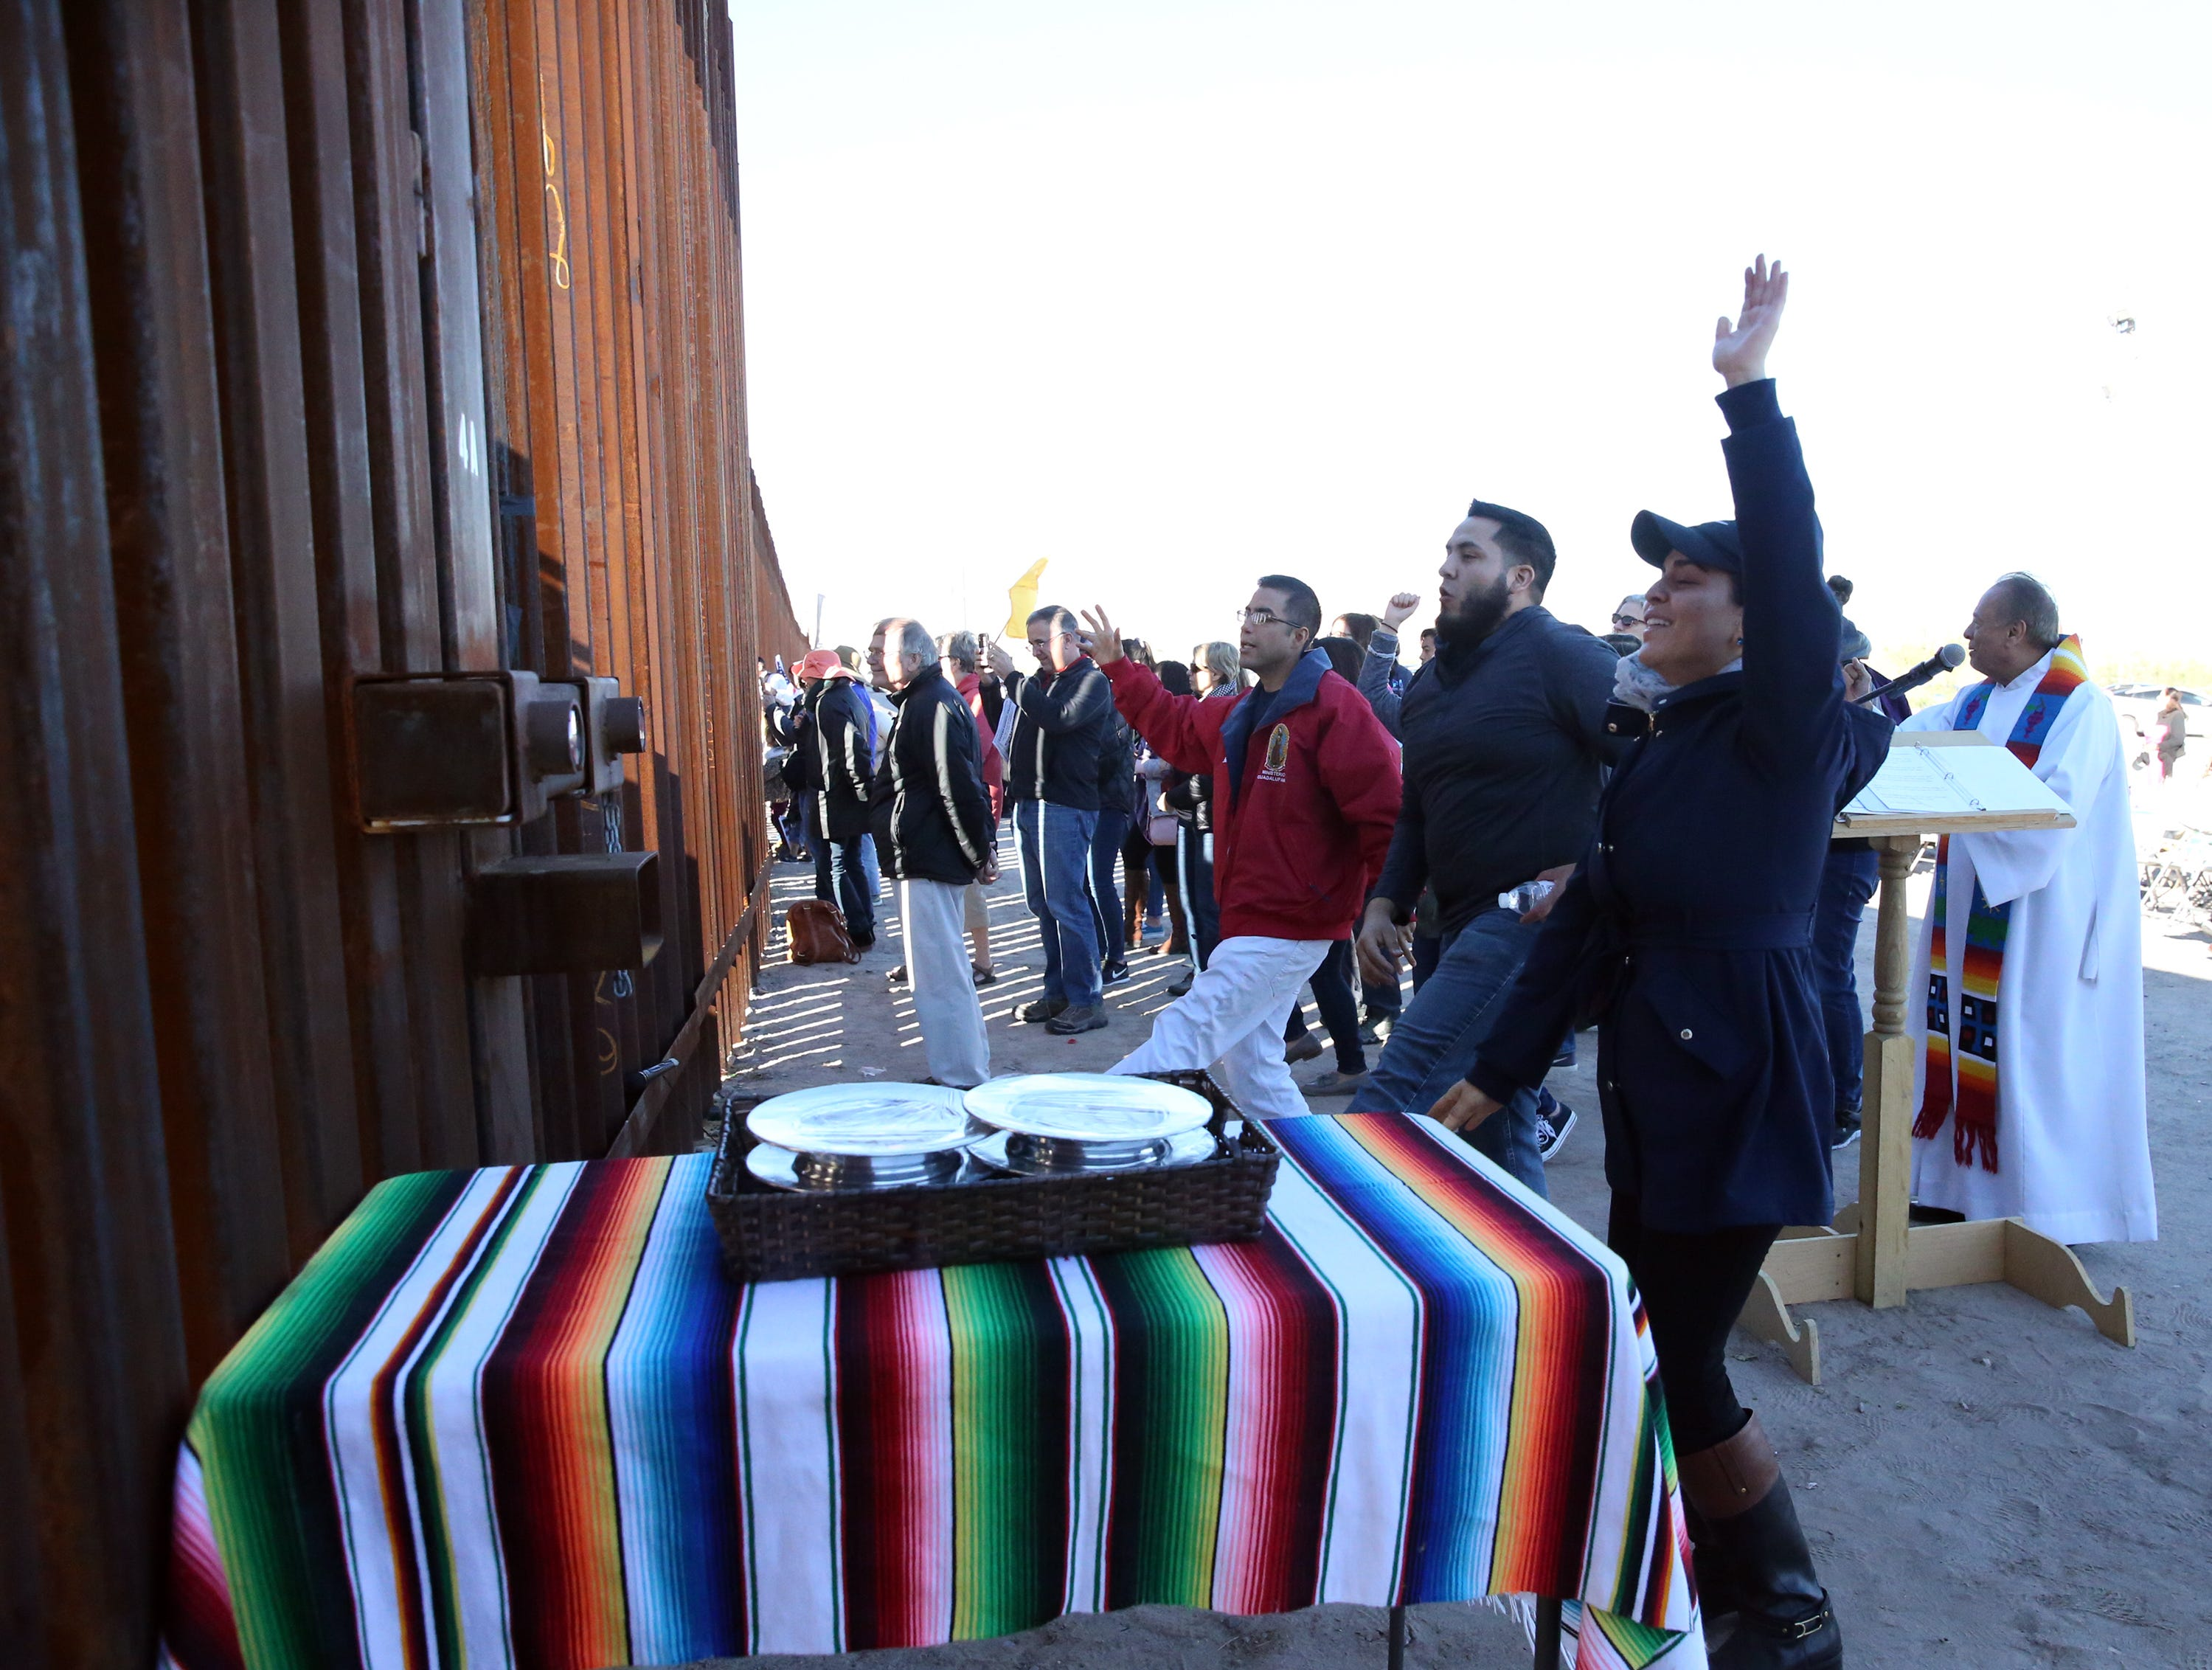 People on the U.S. side of the border fence sing and dance to music coming from the other side of the border fence Saturday.